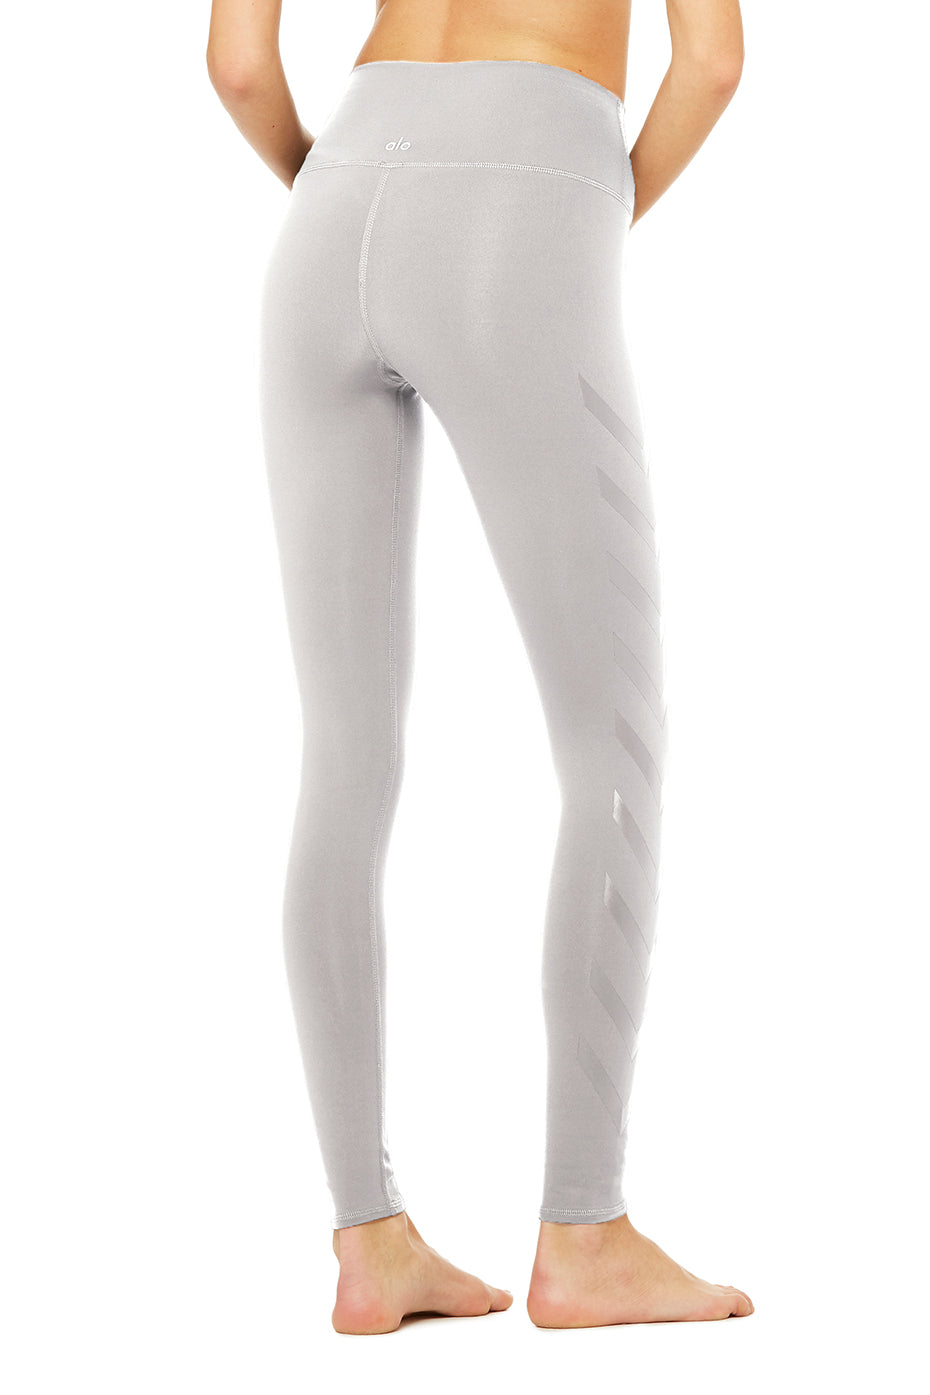 High-Waist Airbrush Legging - Alo Class Print